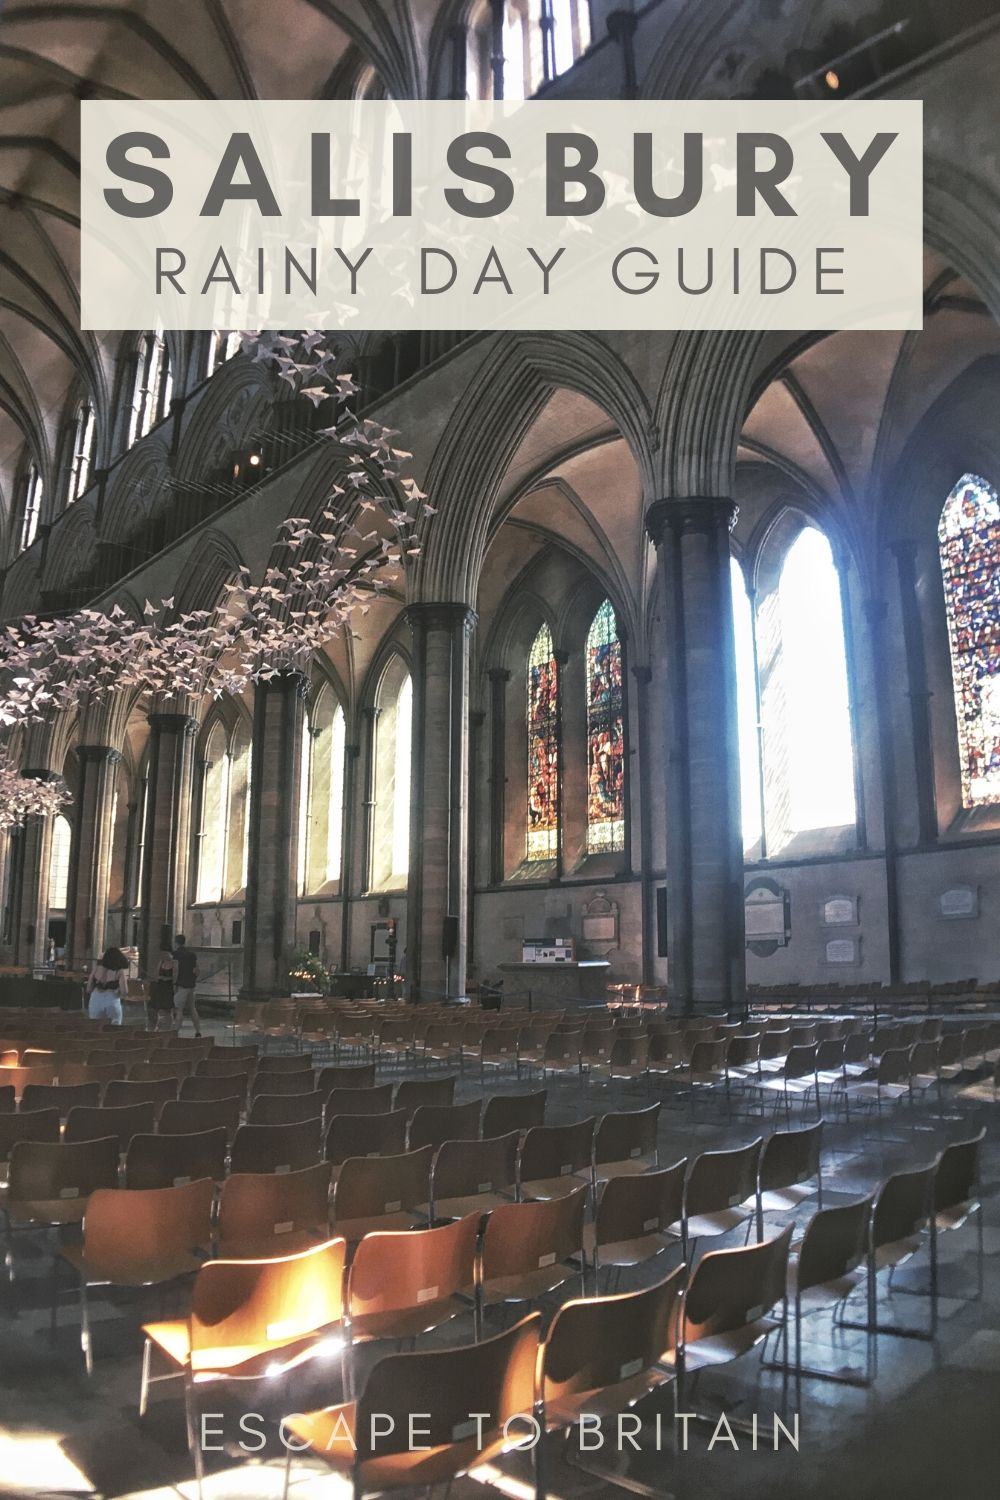 Best things to do in salisbury/ How to Spend a Rainy Day in Salisbury (Indoor Activities) in England